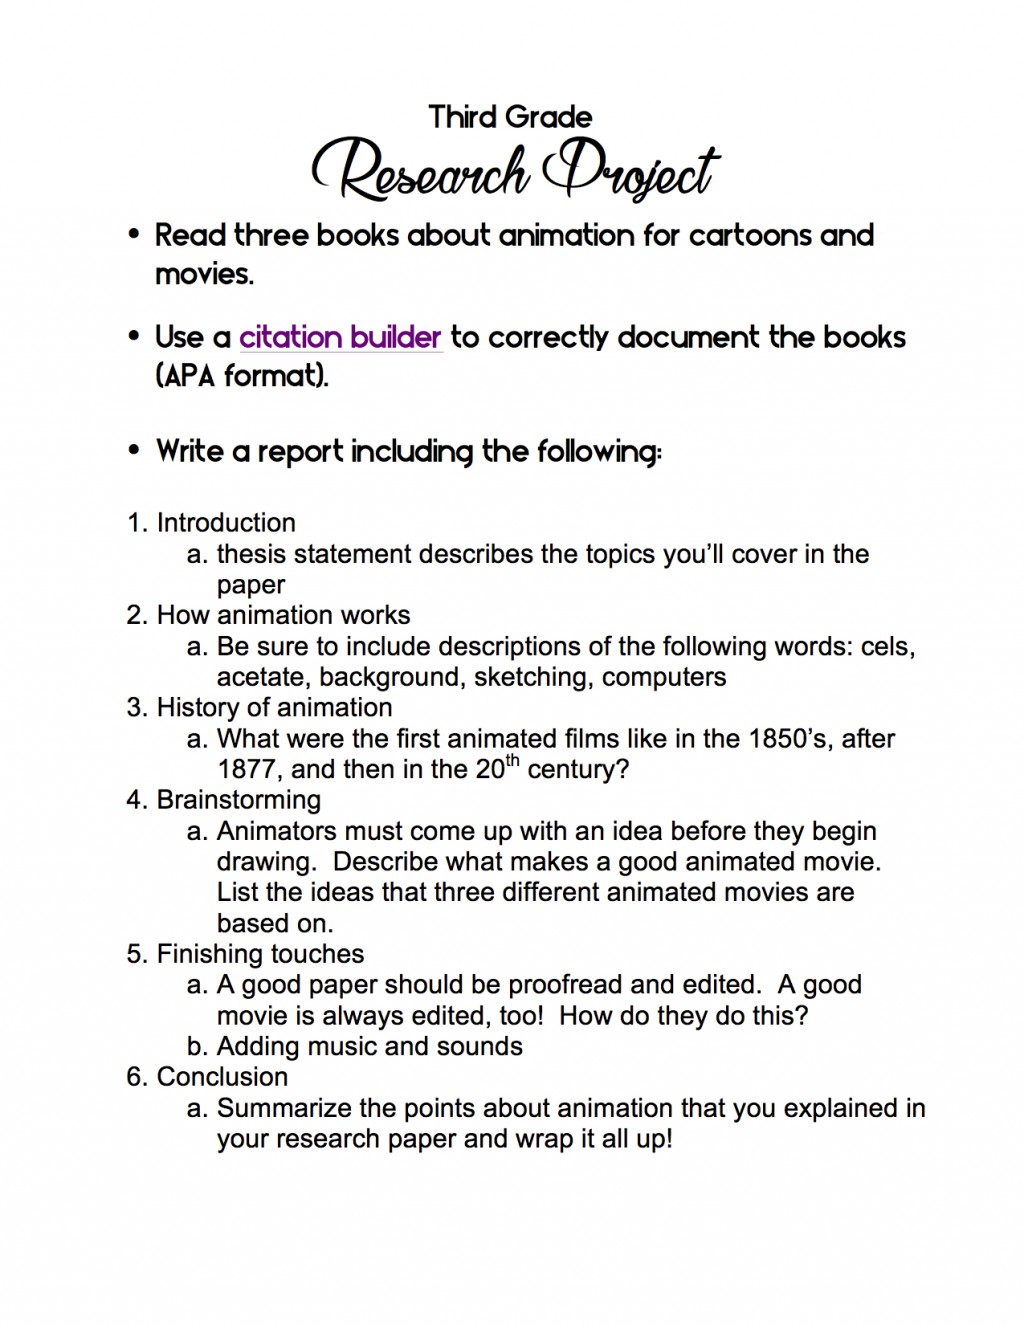 006 3rd Grade Research Project Paper Cancer Topic Archaicawful Ideas Breast Large